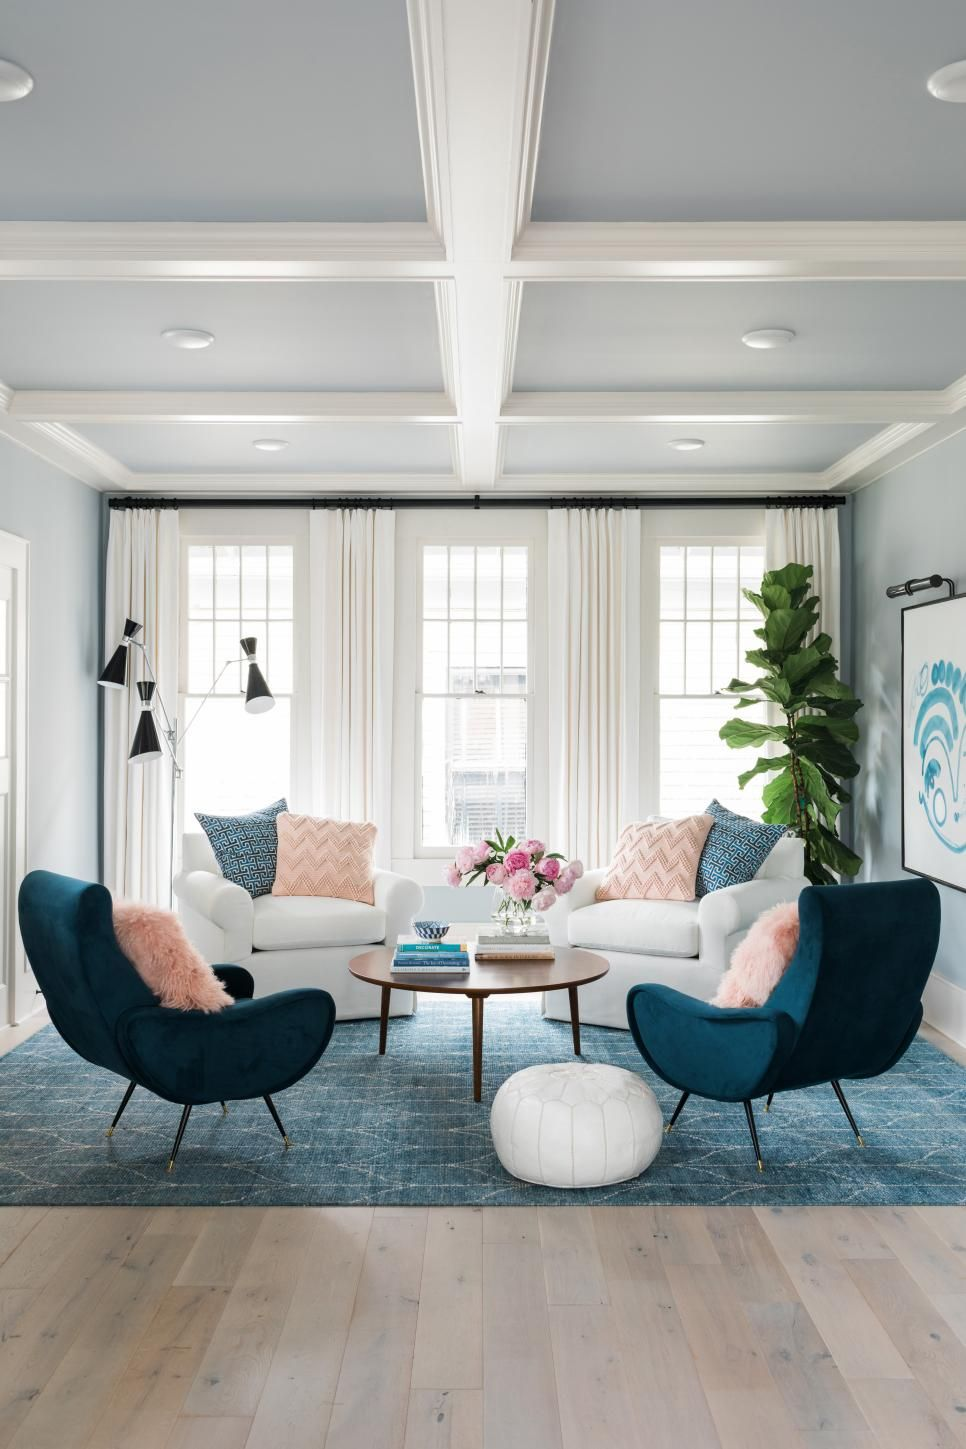 living room, wooden floor, white wall, white chairs, blue chairs, round coffee table, blue rug